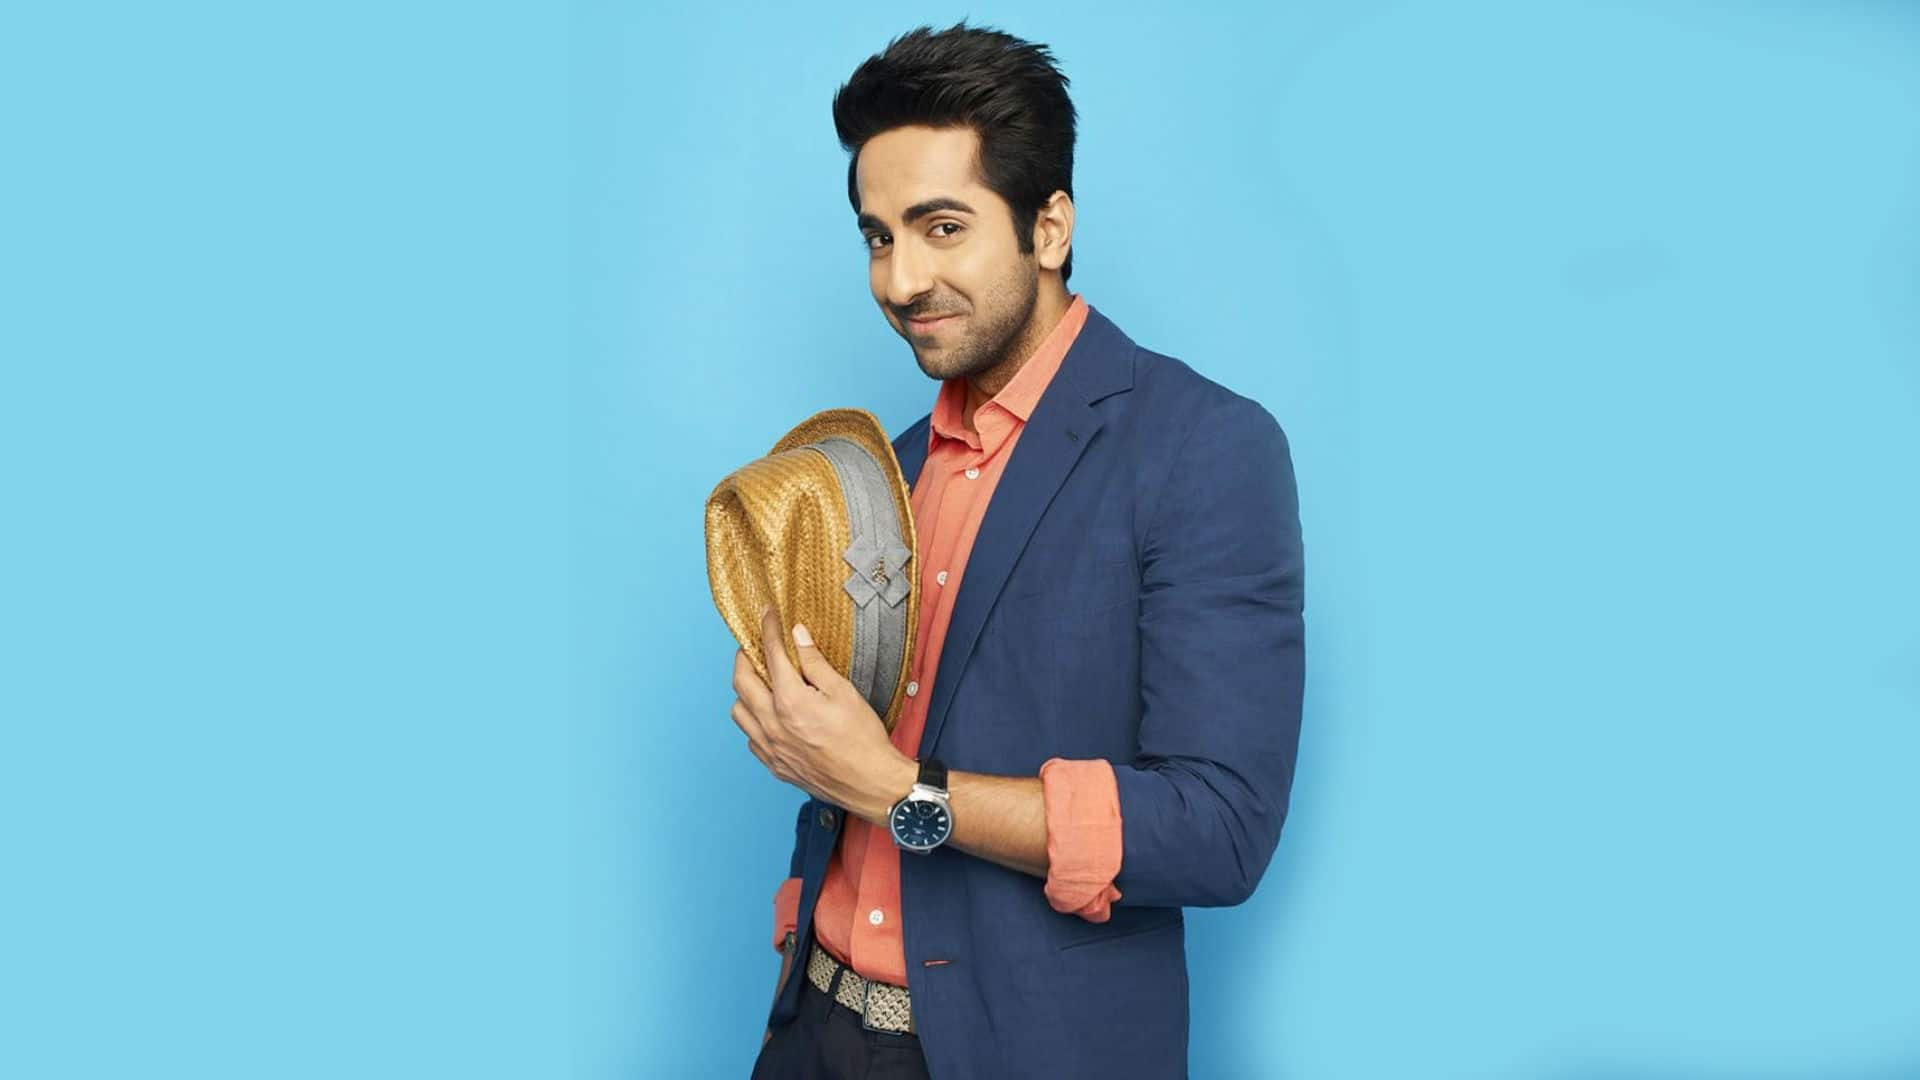 I've Carved A Niche For Myself: Ayushmann Khurrana On The Roles He Does In Films